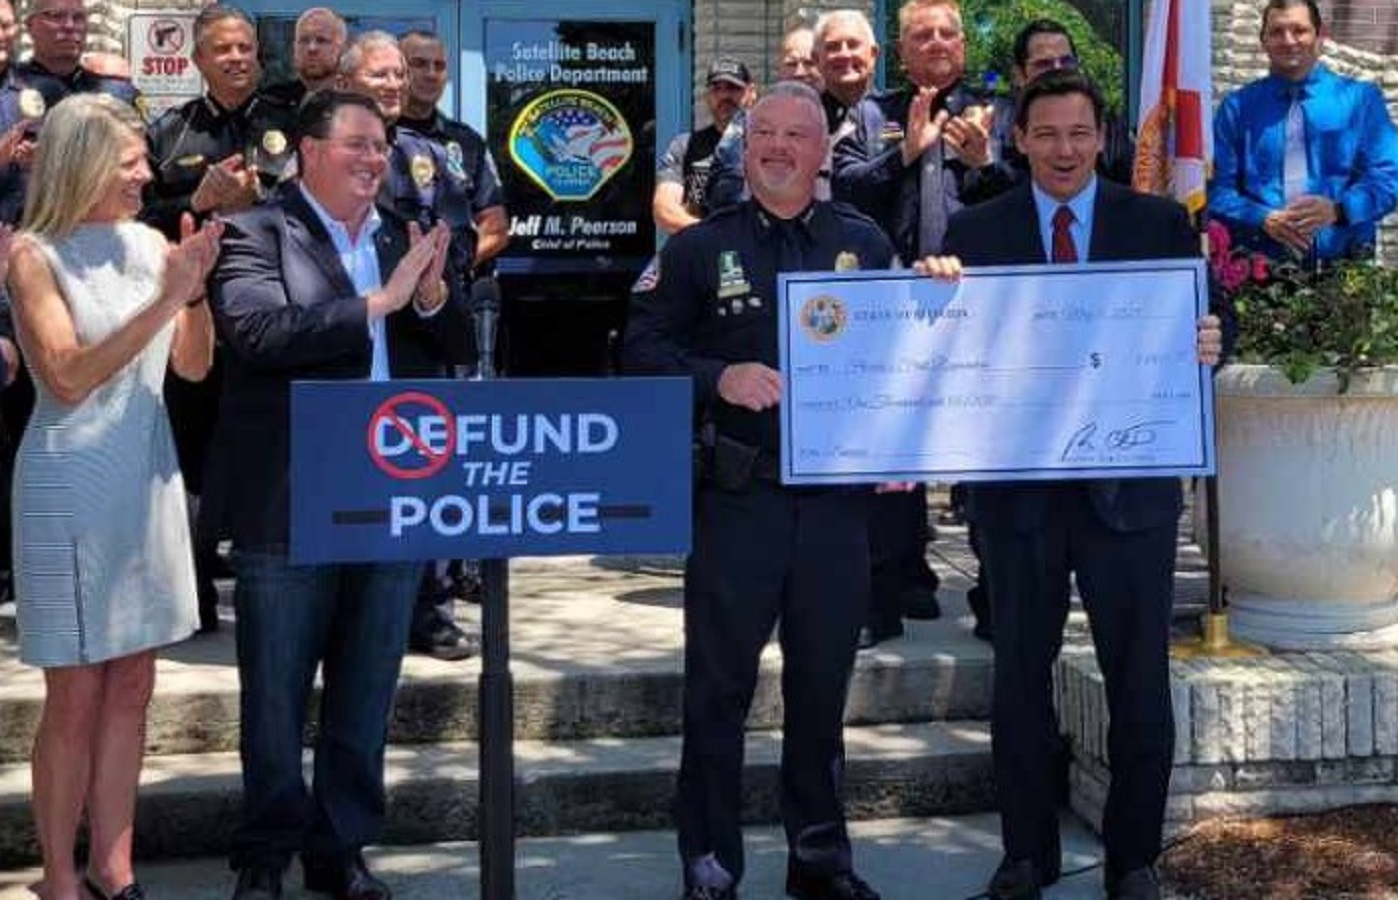 Florida Governor Ron DeSantis Announces $1K Bonuses to Law Enforcement, 'We're Funding the Police, and Then Some' (VIDEO)